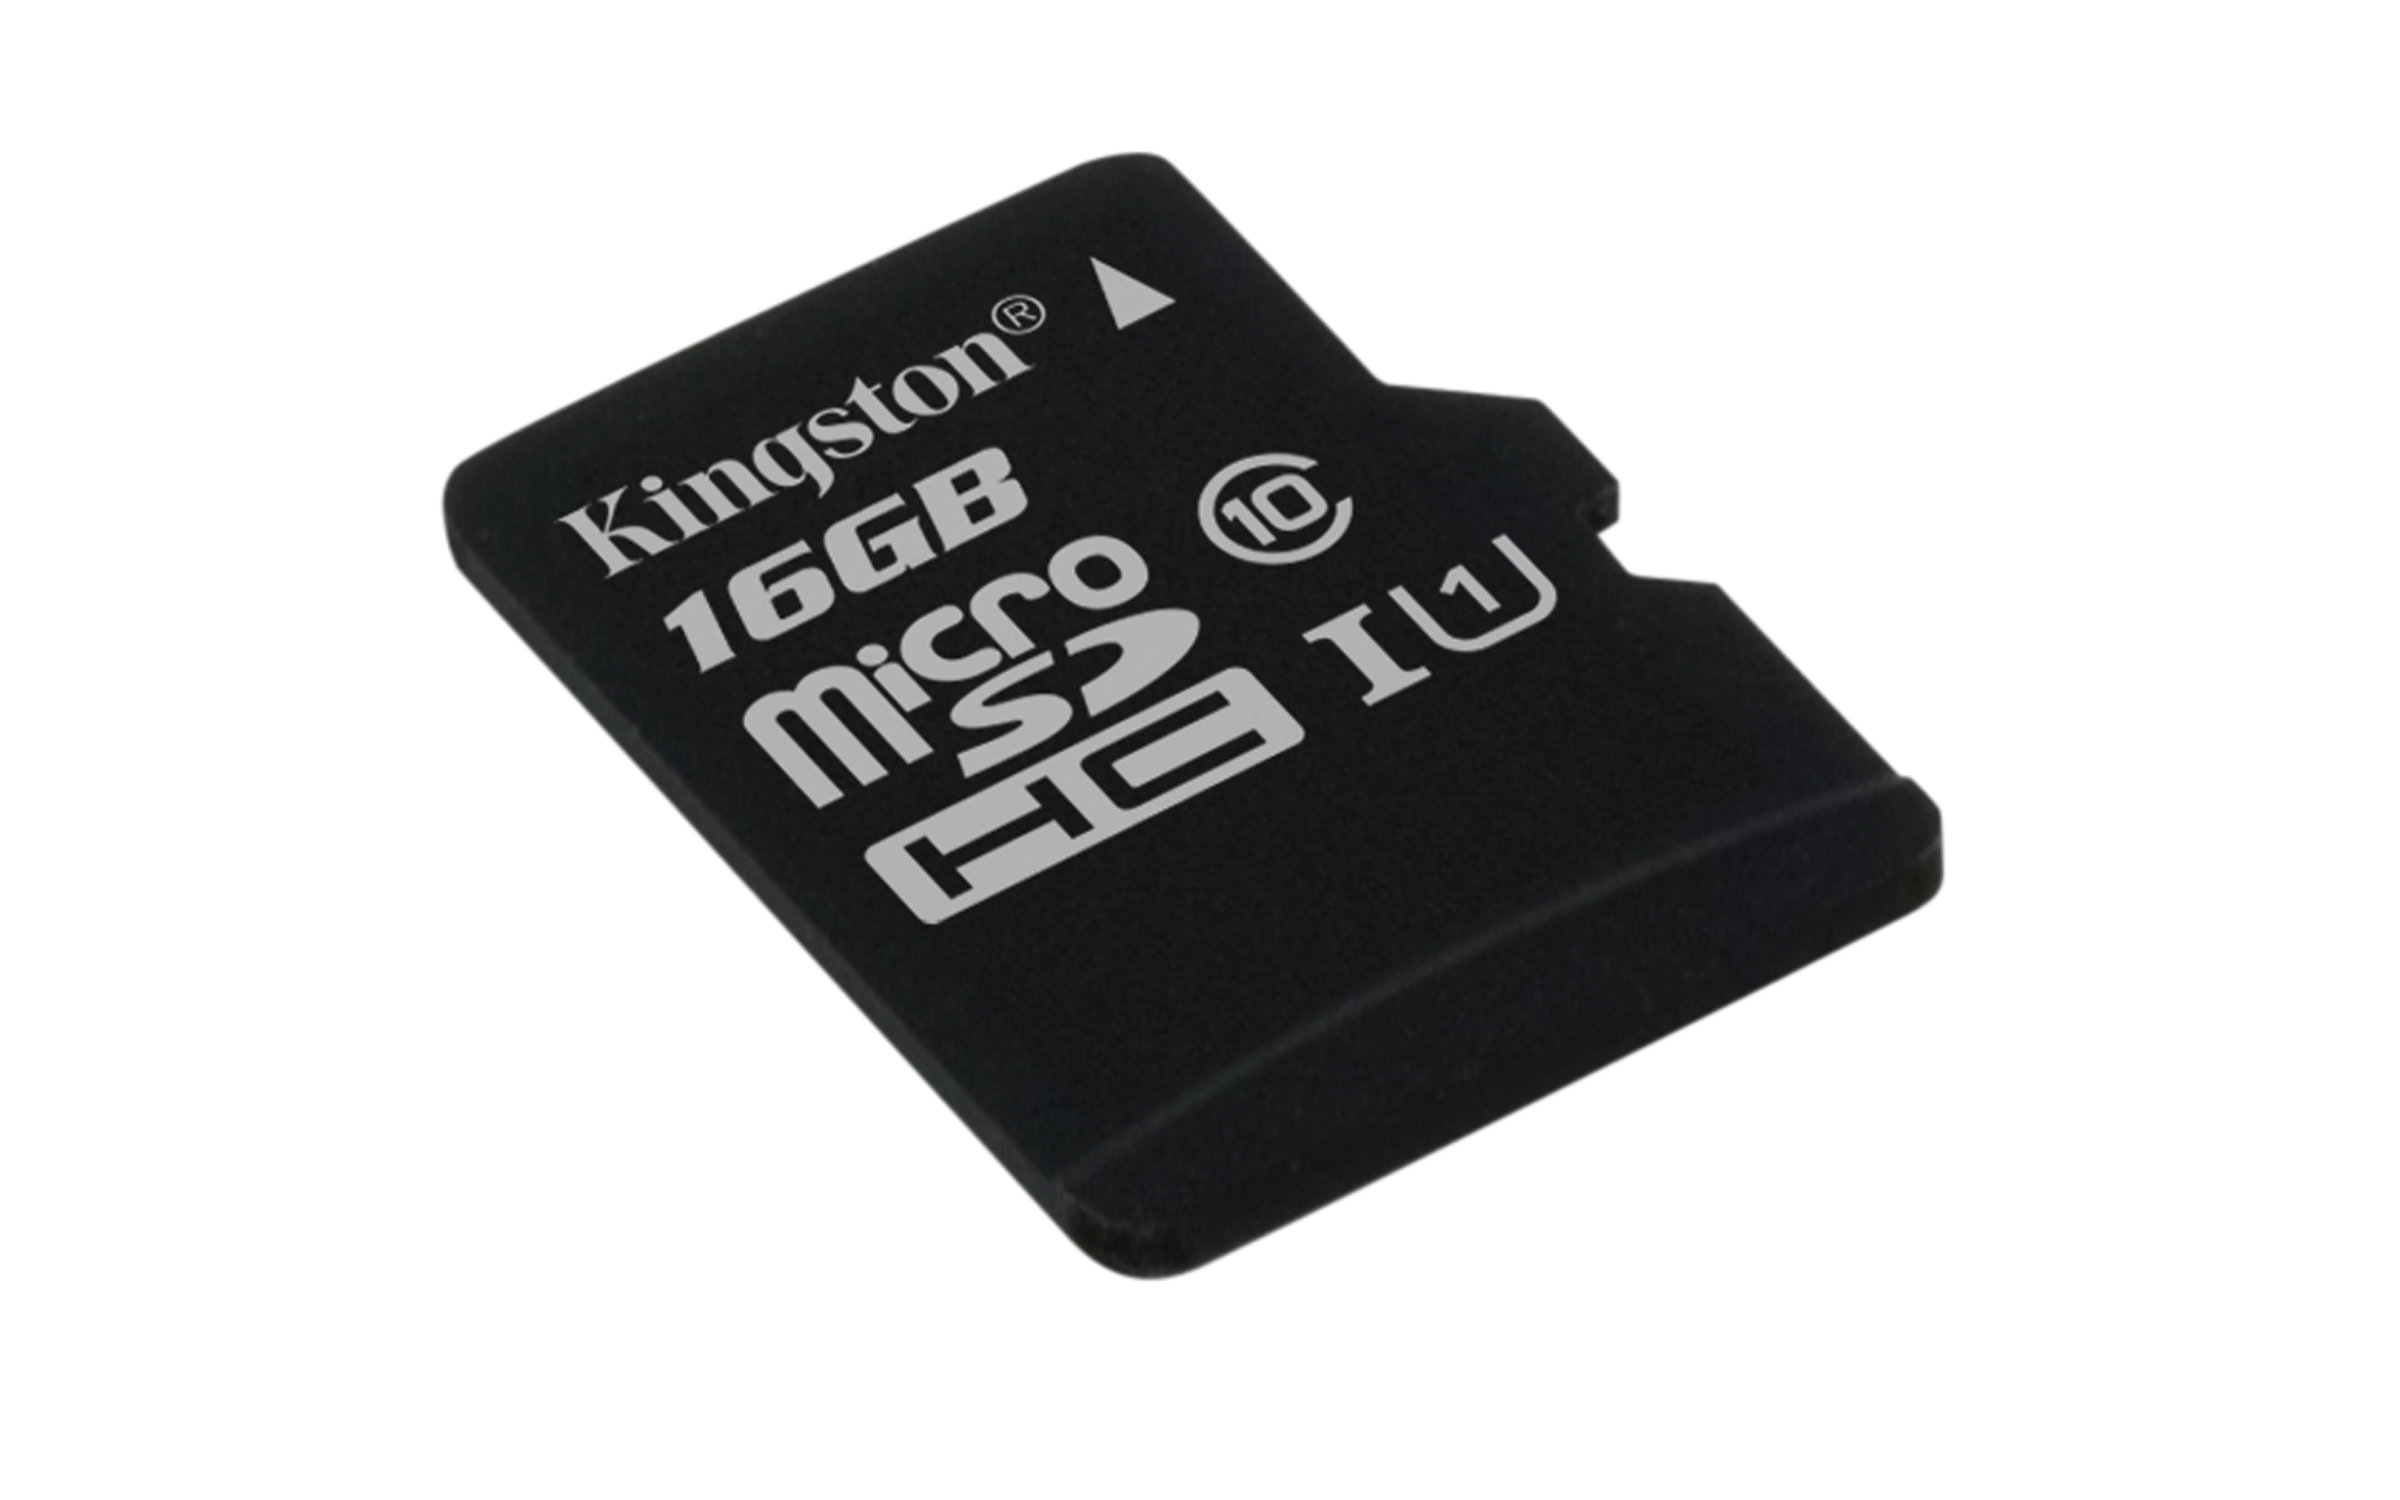 KINGSTON 16GB microSDHC Memory Card 45MB/10MBs- UHS-I class 10 Gen 2 - BEZ ADAPTÉRU